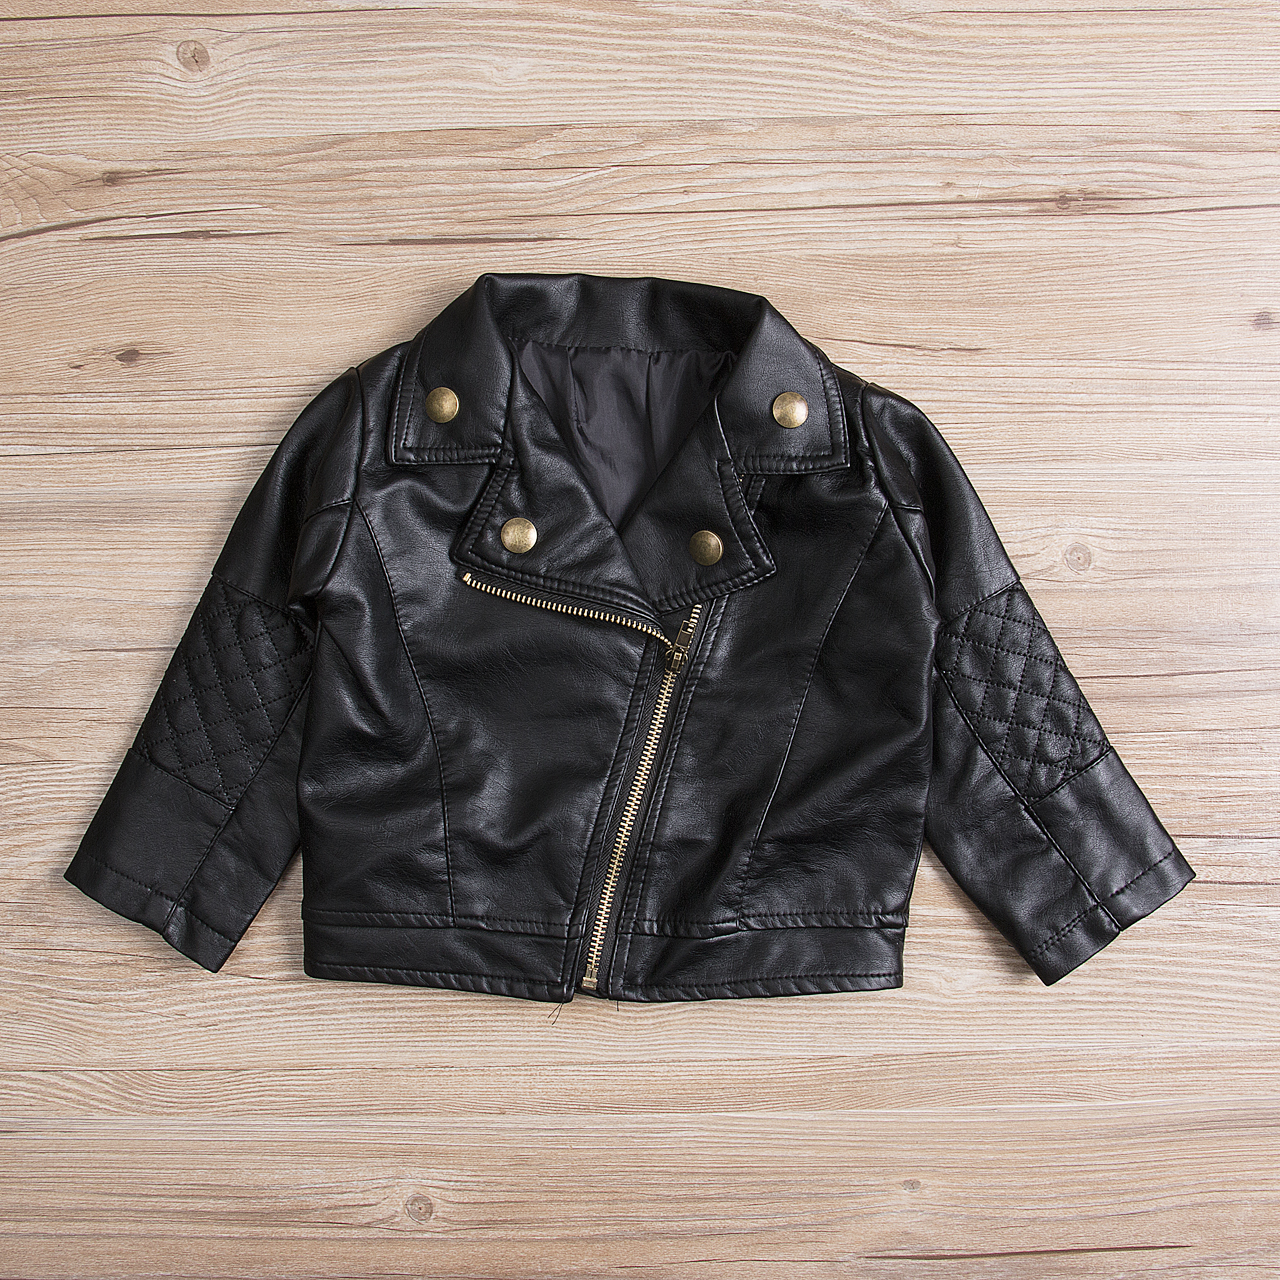 Baby stylish girl jackets forecasting to wear for on every day in 2019